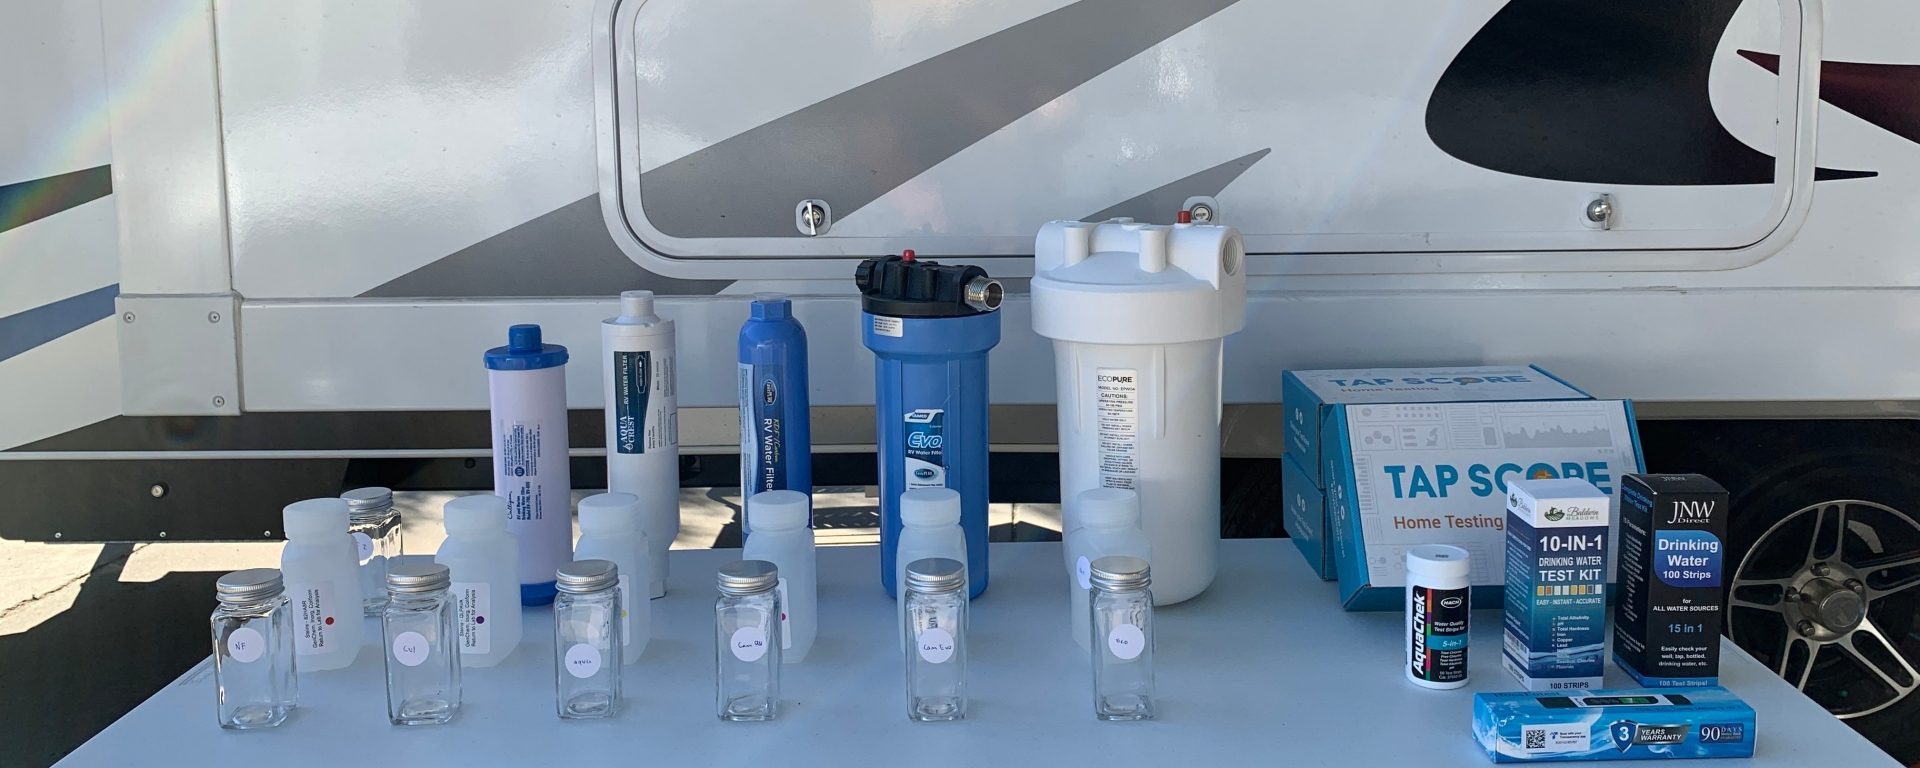 Image of the Culligan RV-8001 Water Filter, AquaCrest RV Inline Water Filter, and Camco TastePURE RV/Marine Water Filter, along with water quality test kits and the Tap Score commercial water quality testing kit.